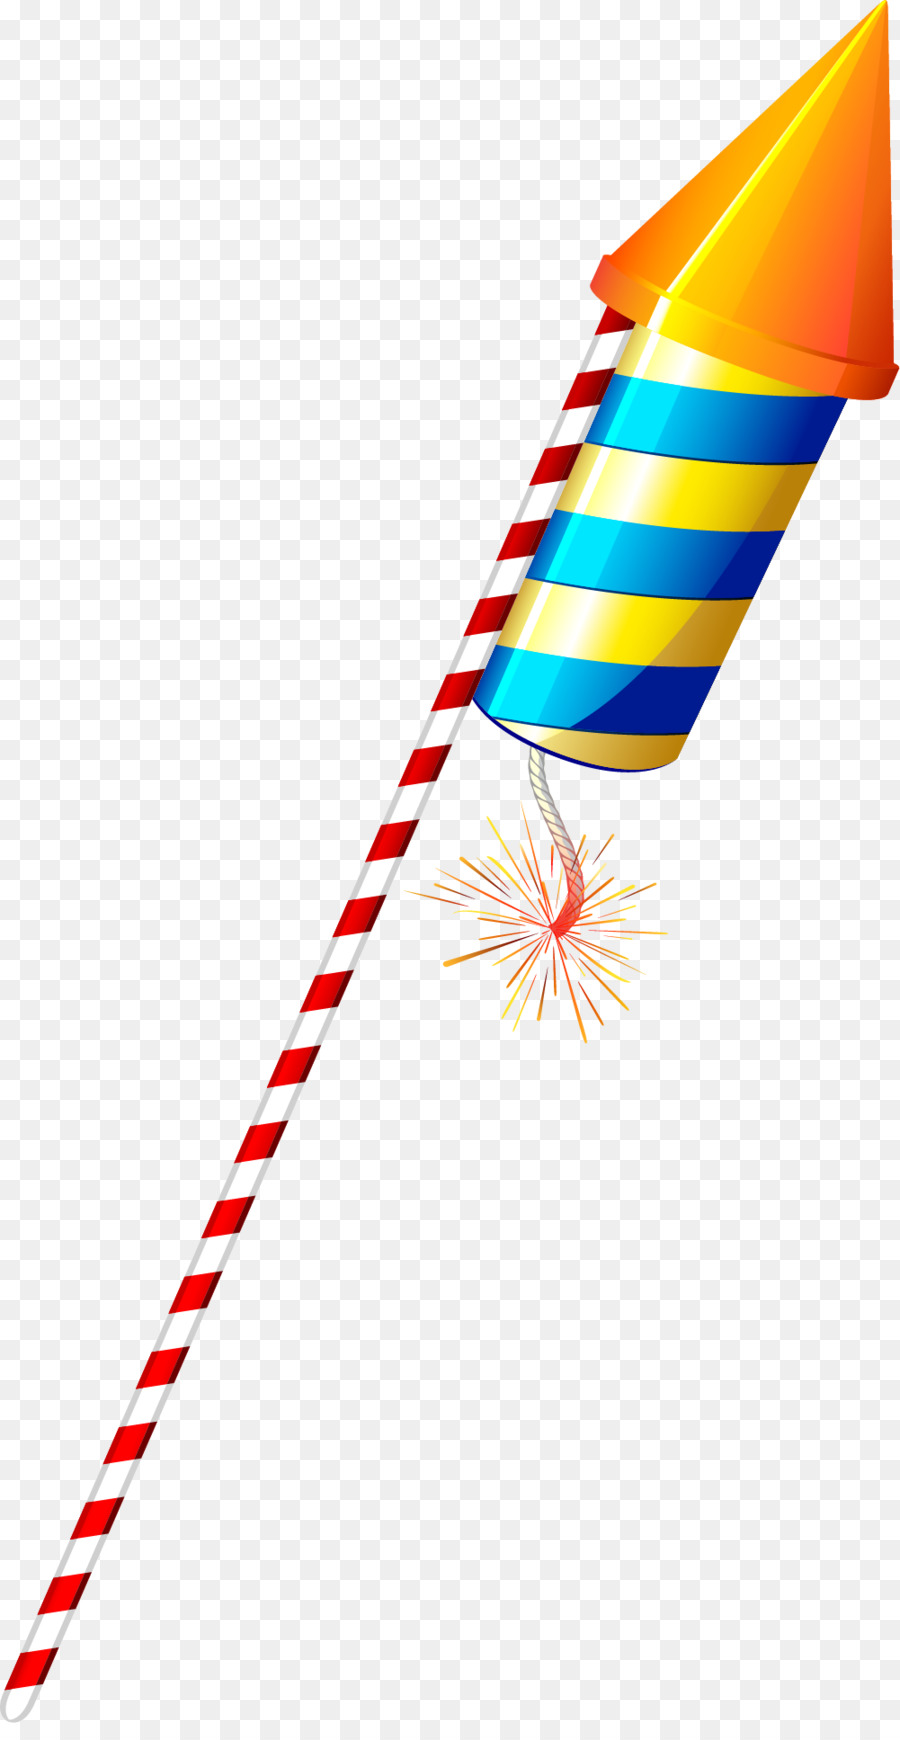 Diwali fireworks clipart vector free Diwali Fireworks clipart - Diwali, Fireworks, Yellow, transparent ... vector free